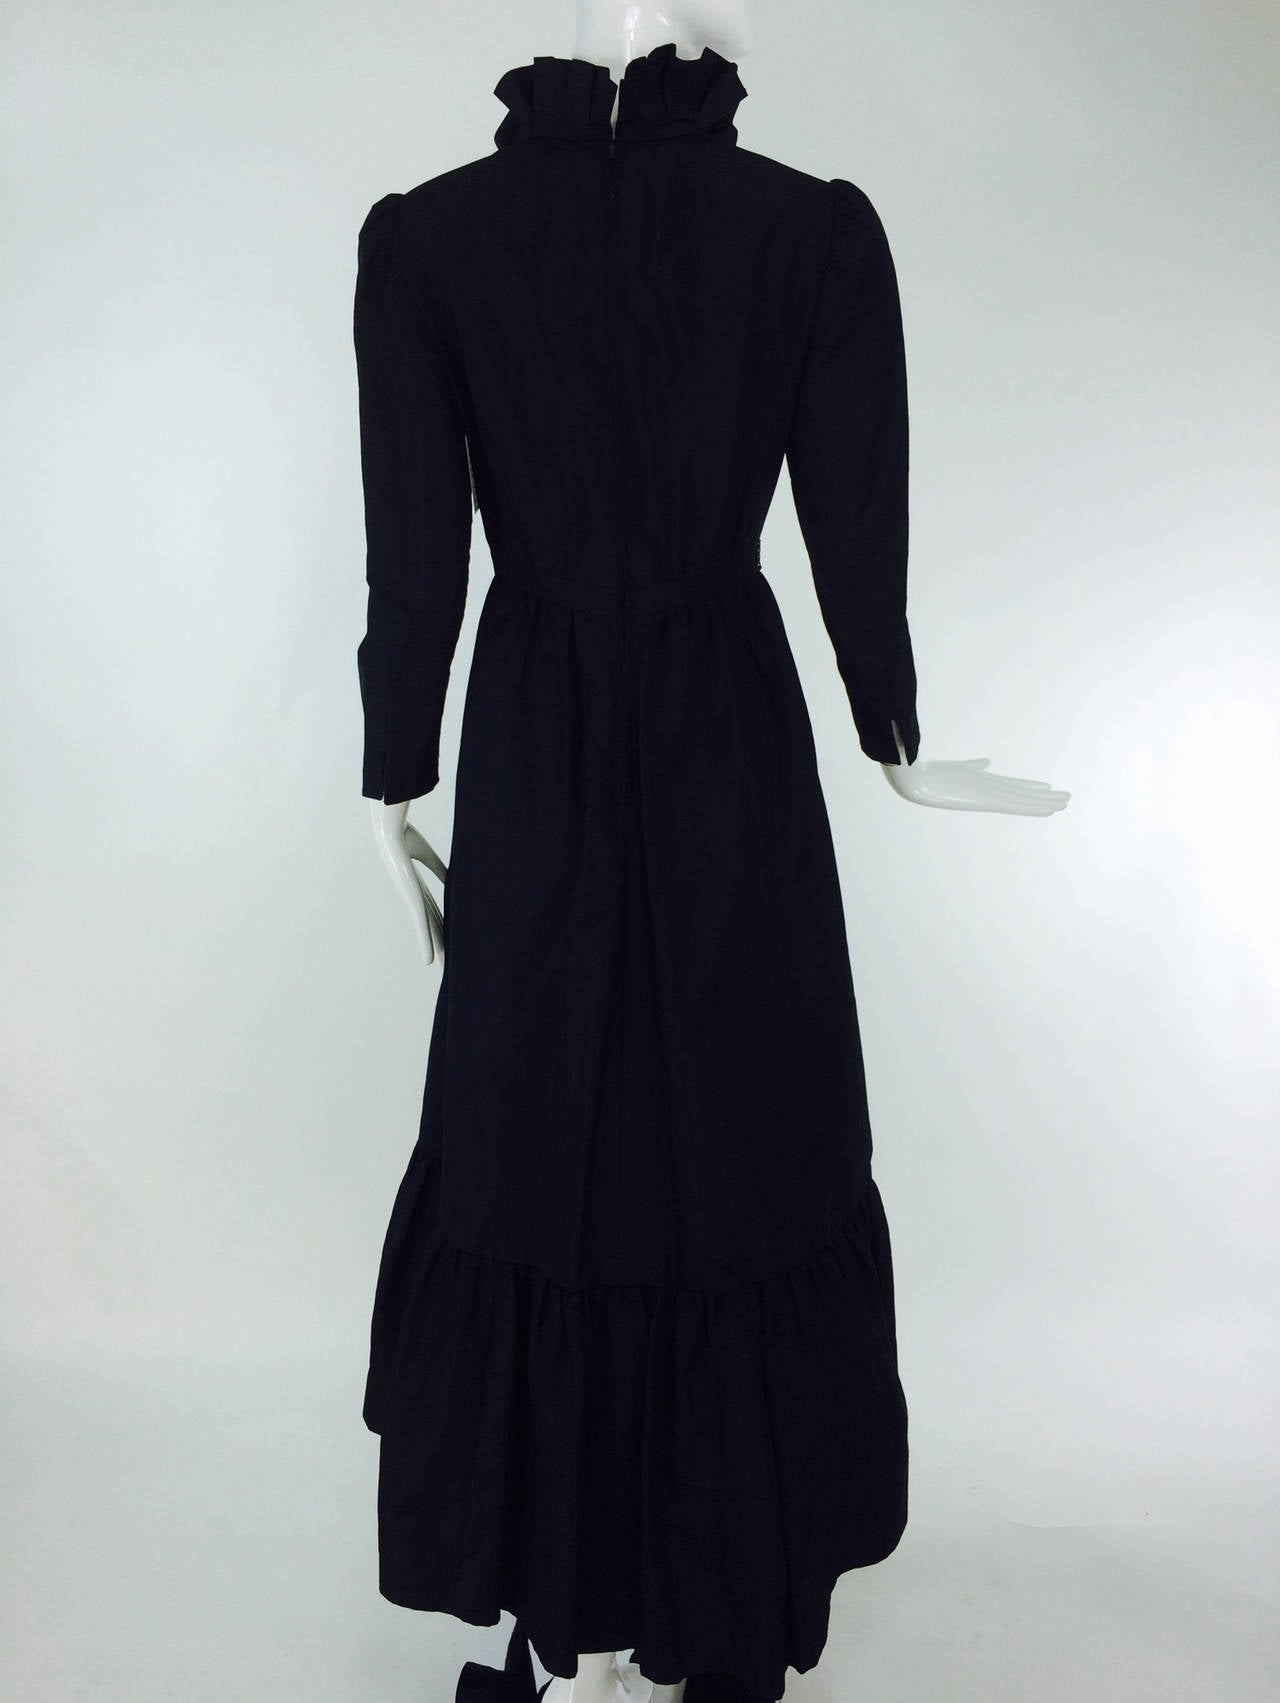 Women's Shannon Rodgers for Jerry Silverman black Victorian style gown 1960s For Sale